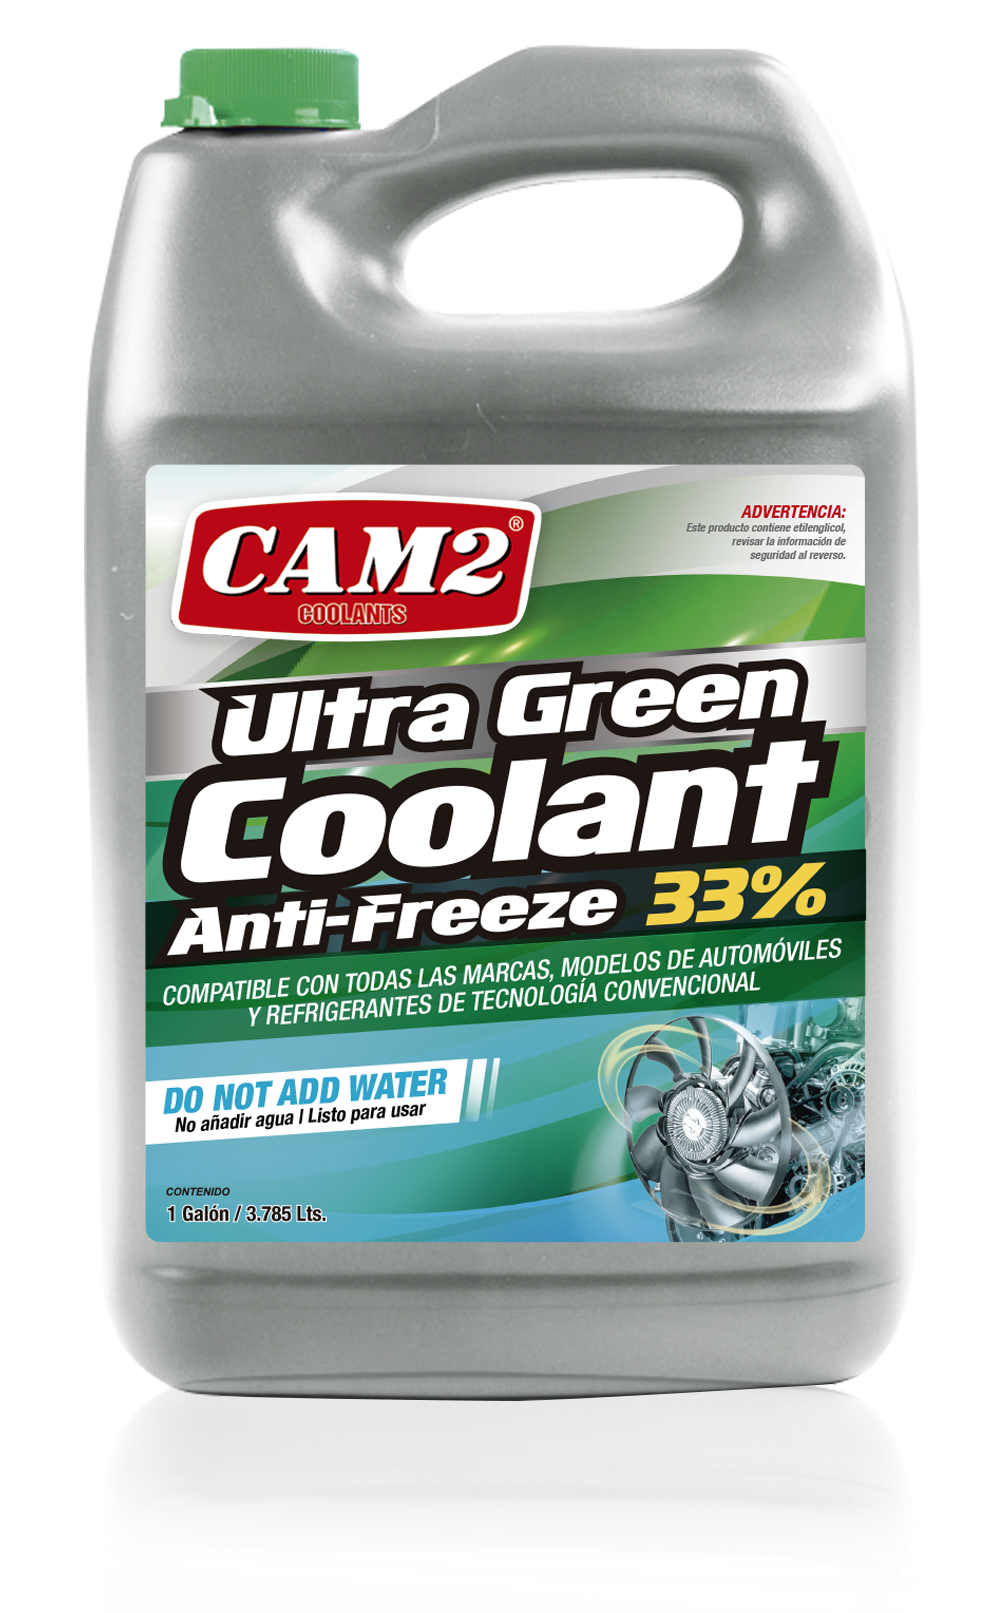 Coolant Anti-Freeze 33%